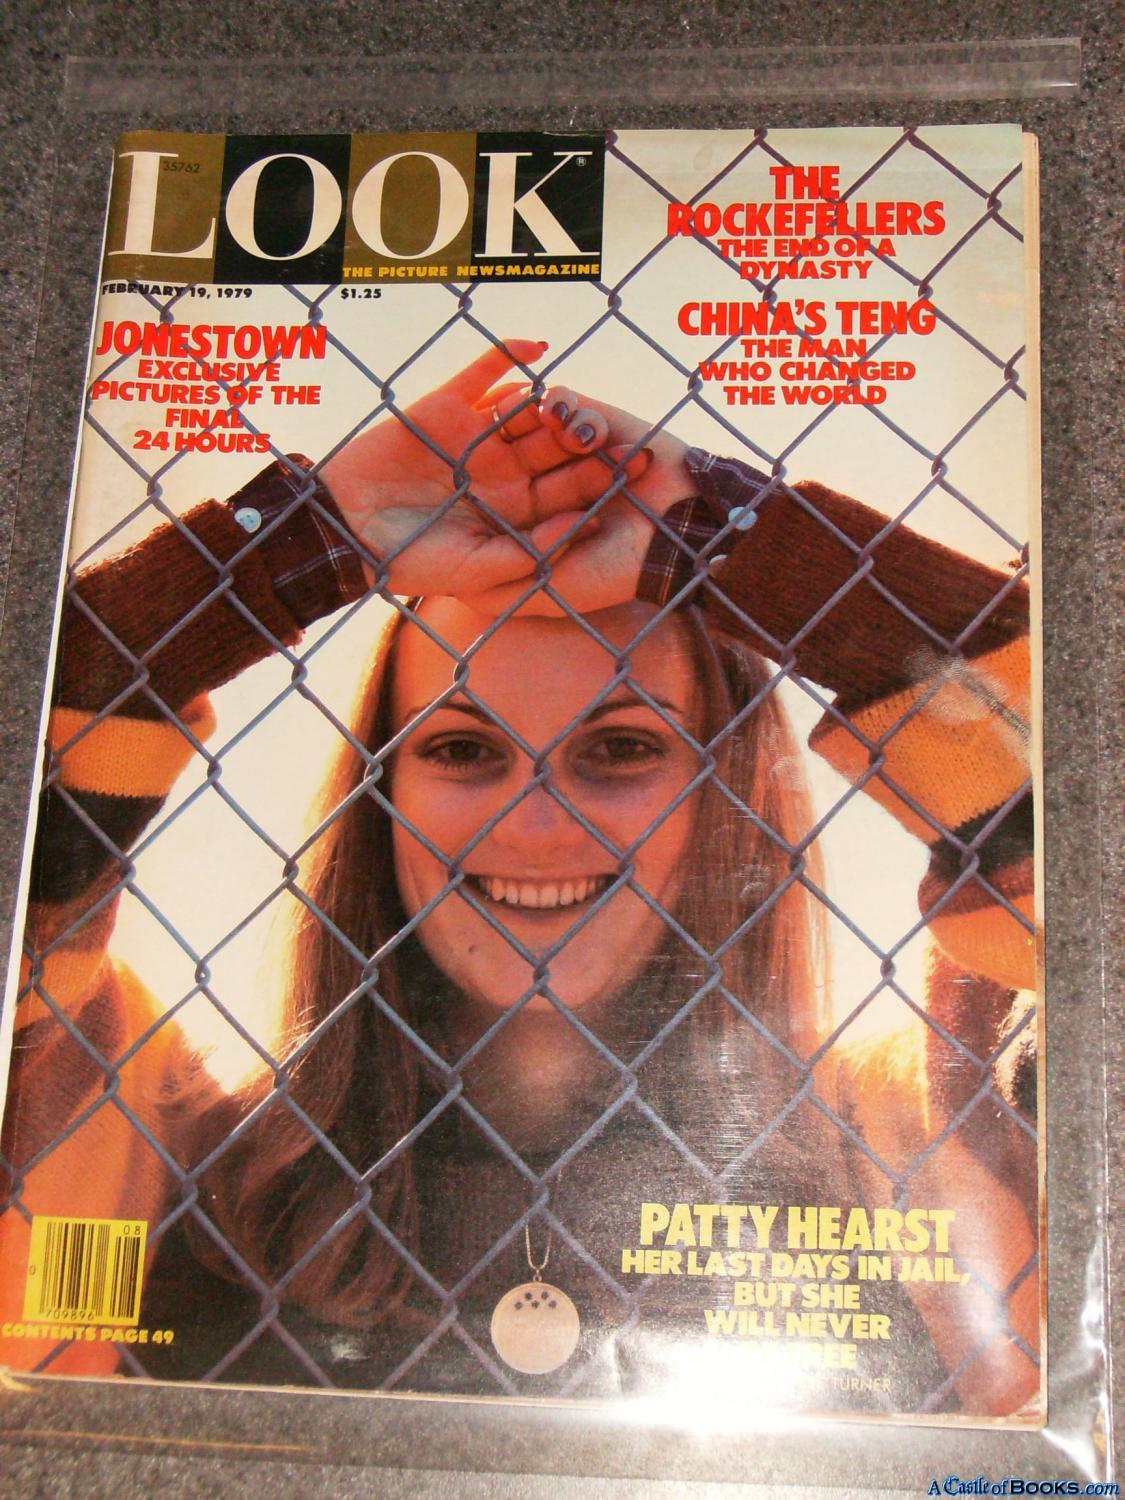 Look February 19, 1979 (Patty Hearst cover, Marilyn Monroe interview, Jonestown) The Picture ...